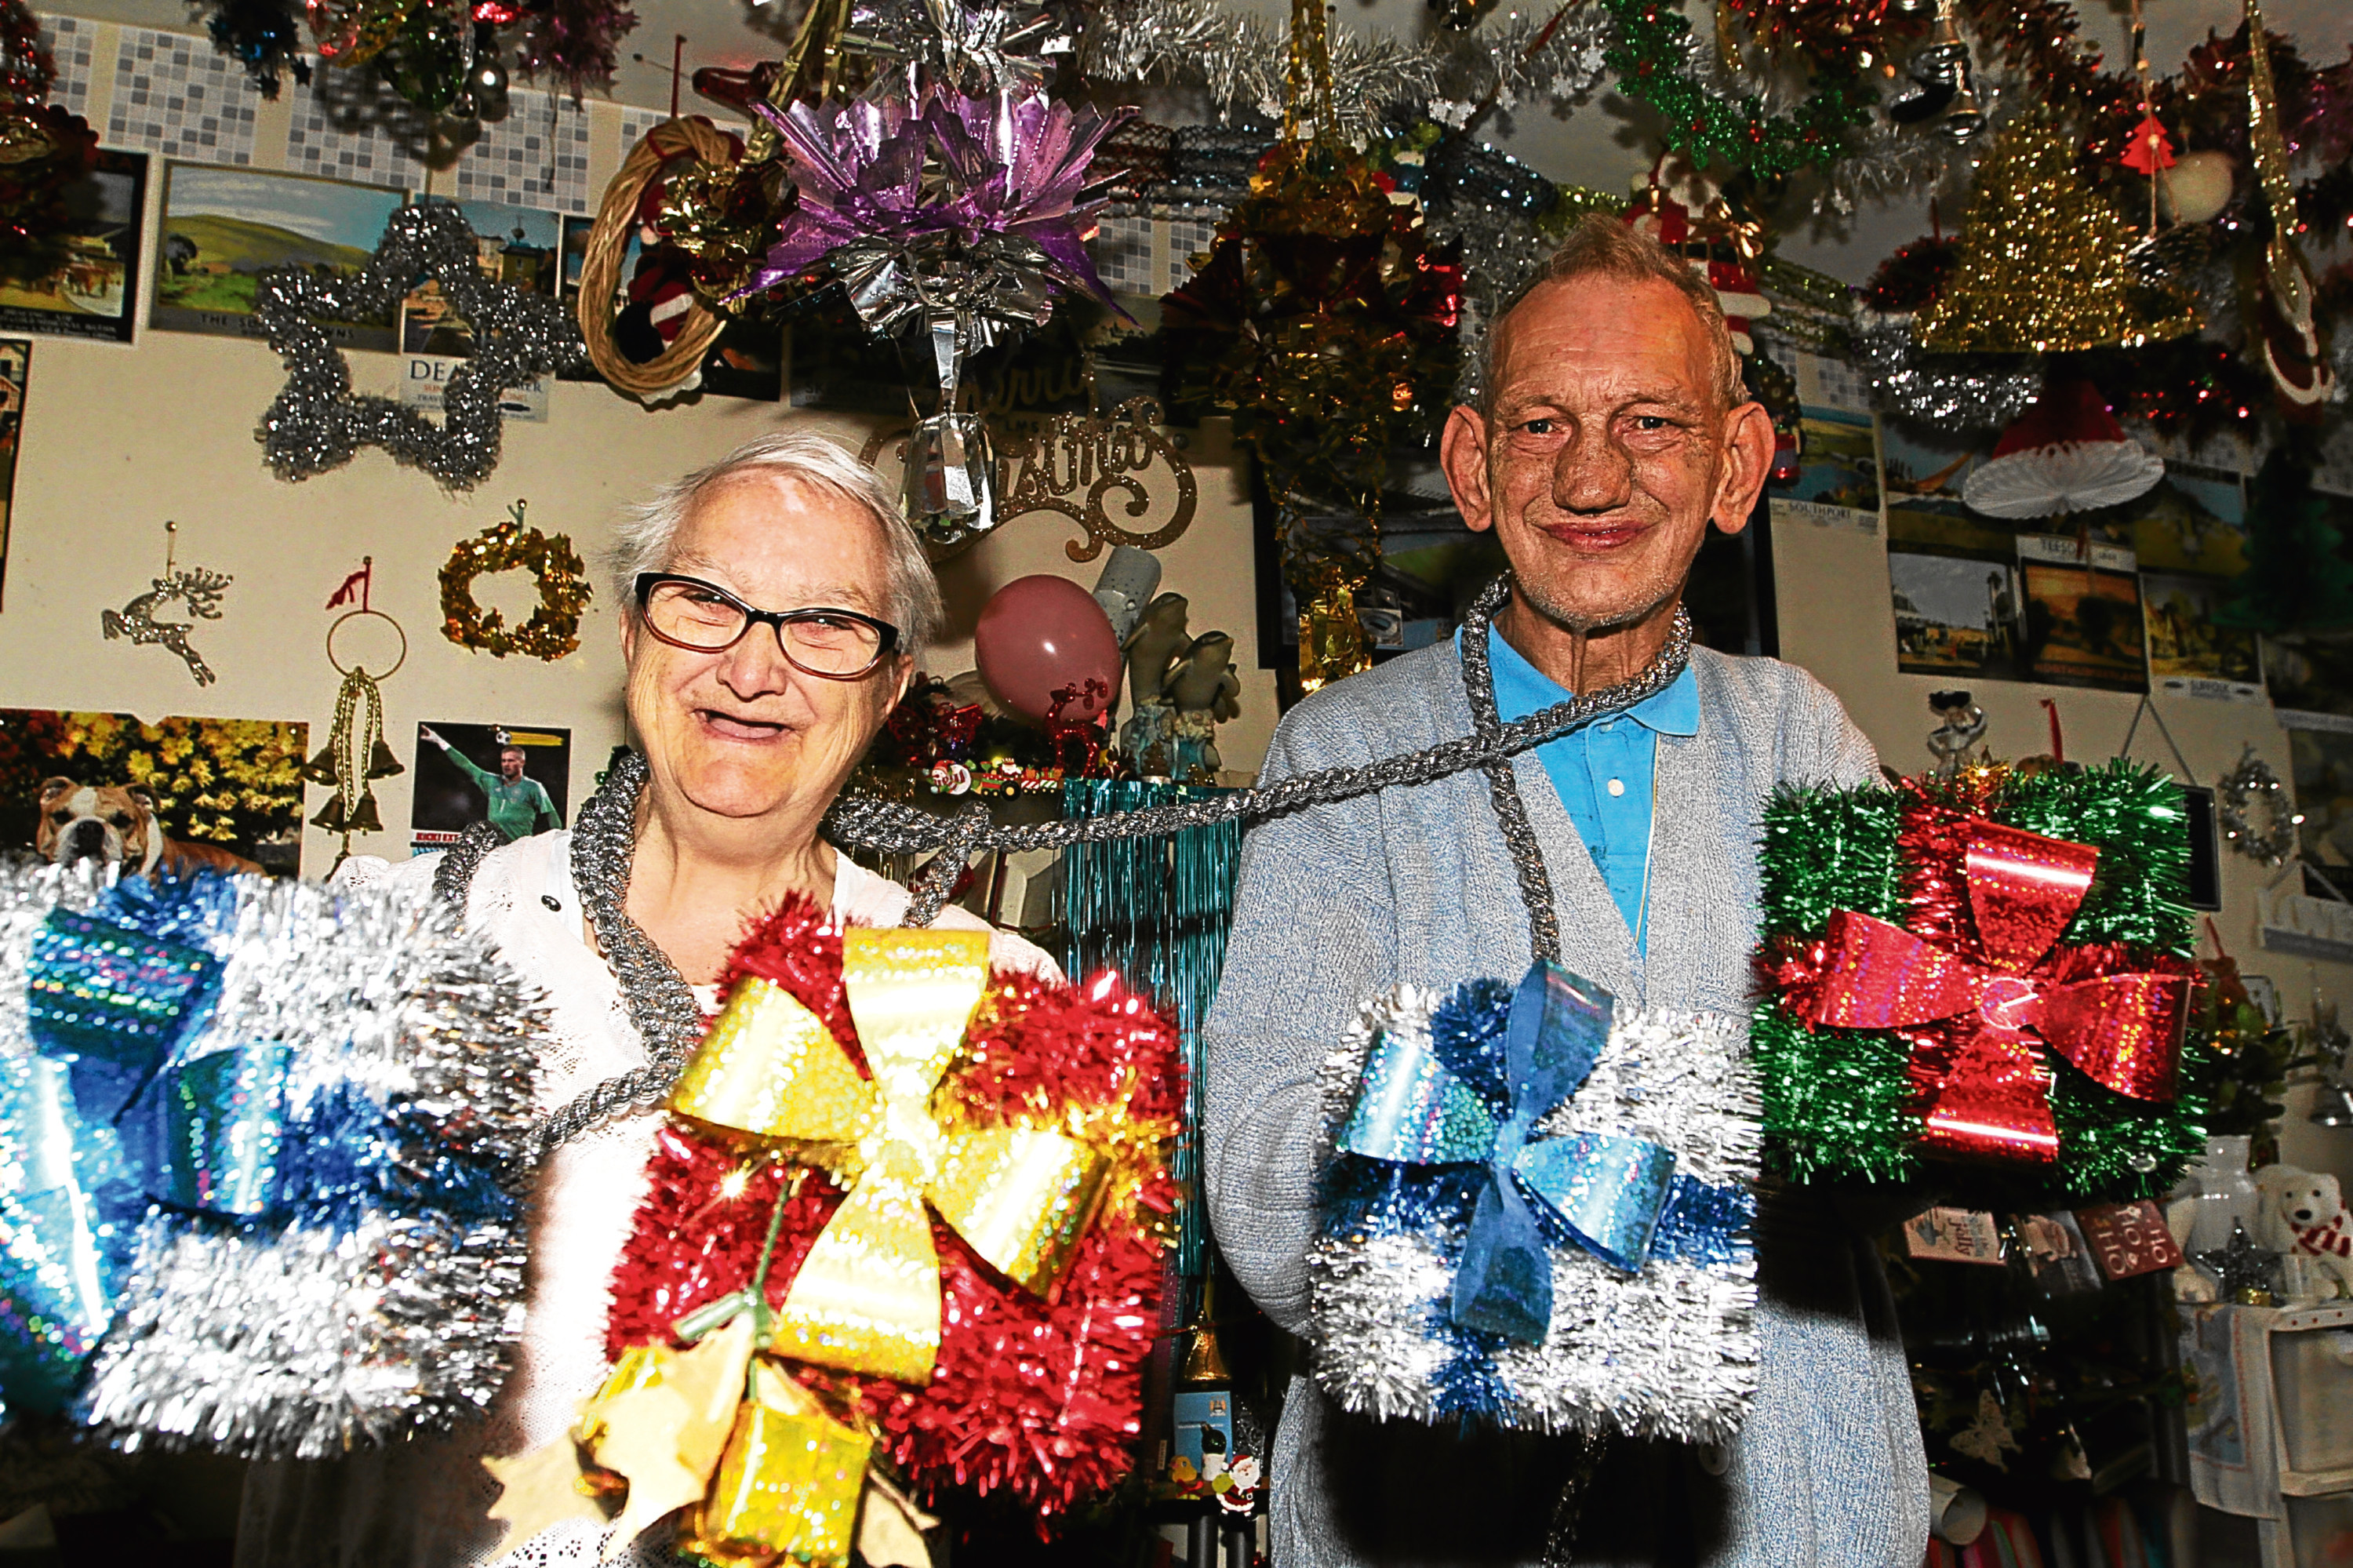 Bob and Valerie Heath show off their Christmas decorations.